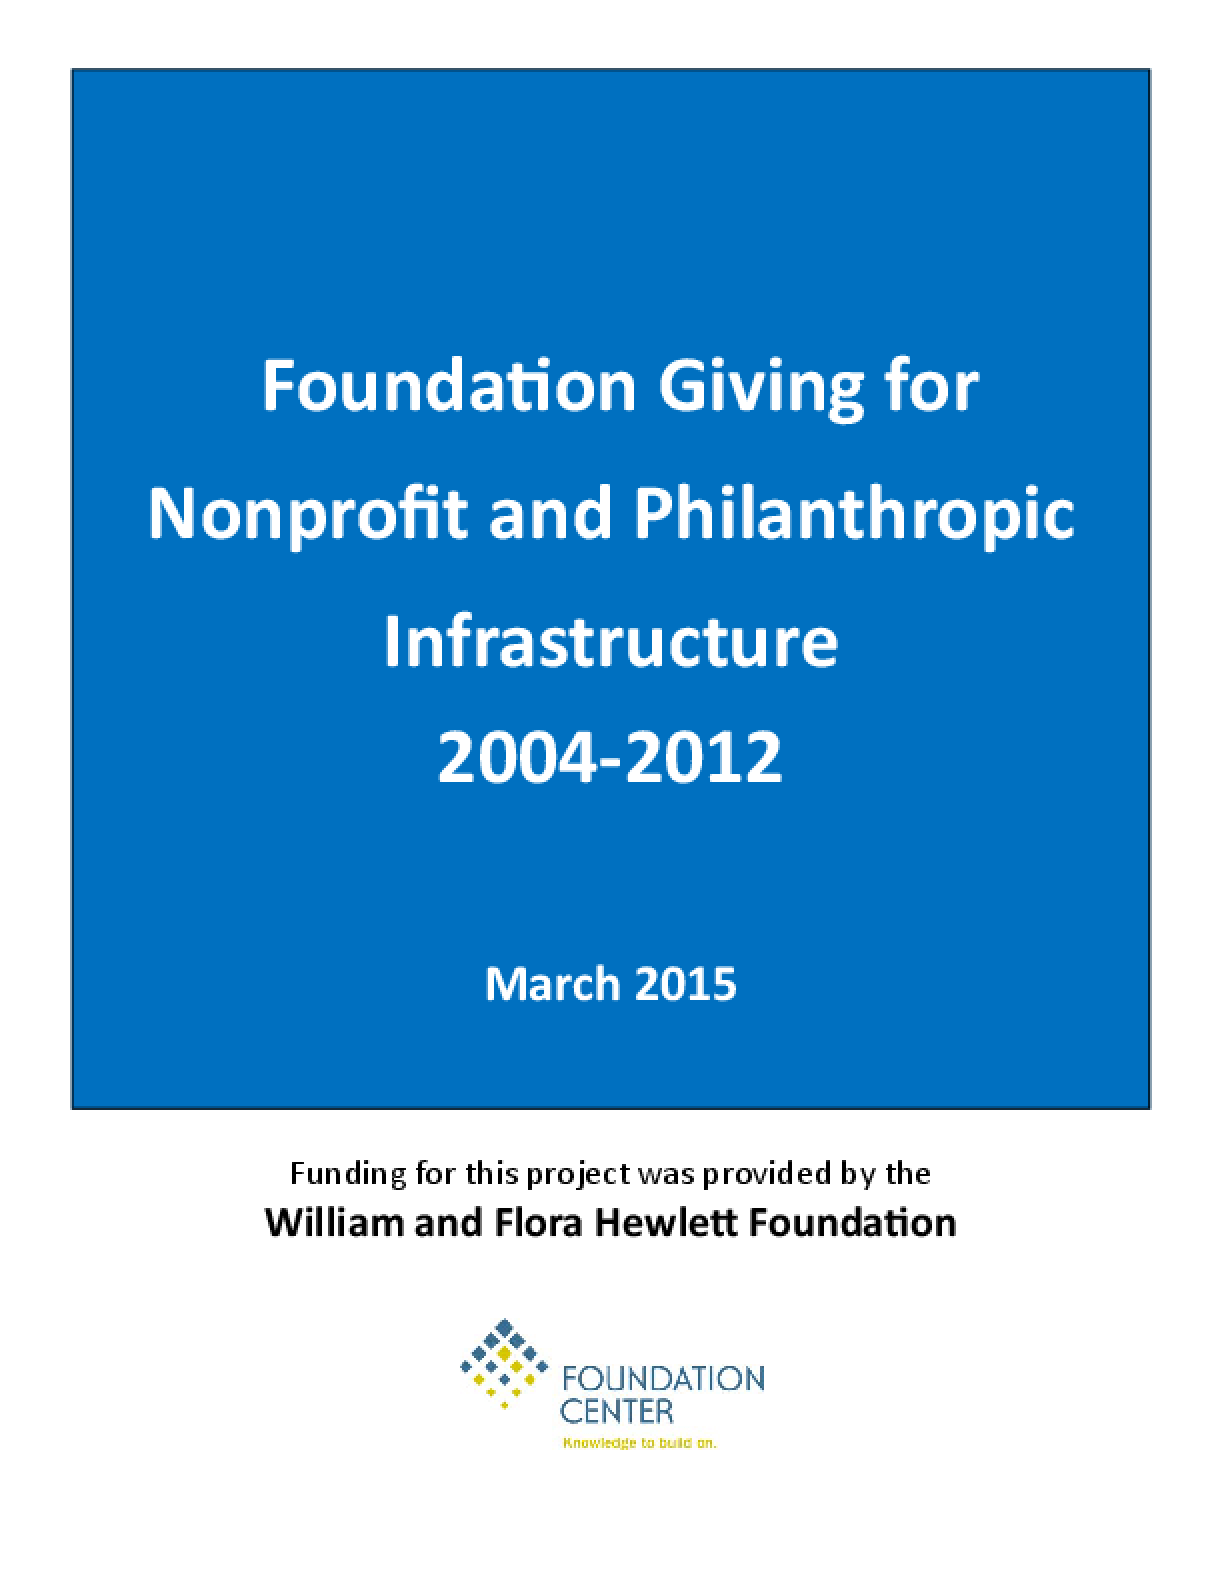 Foundation Giving for Nonprofit and Philanthropic Infrastructure 2004-2012